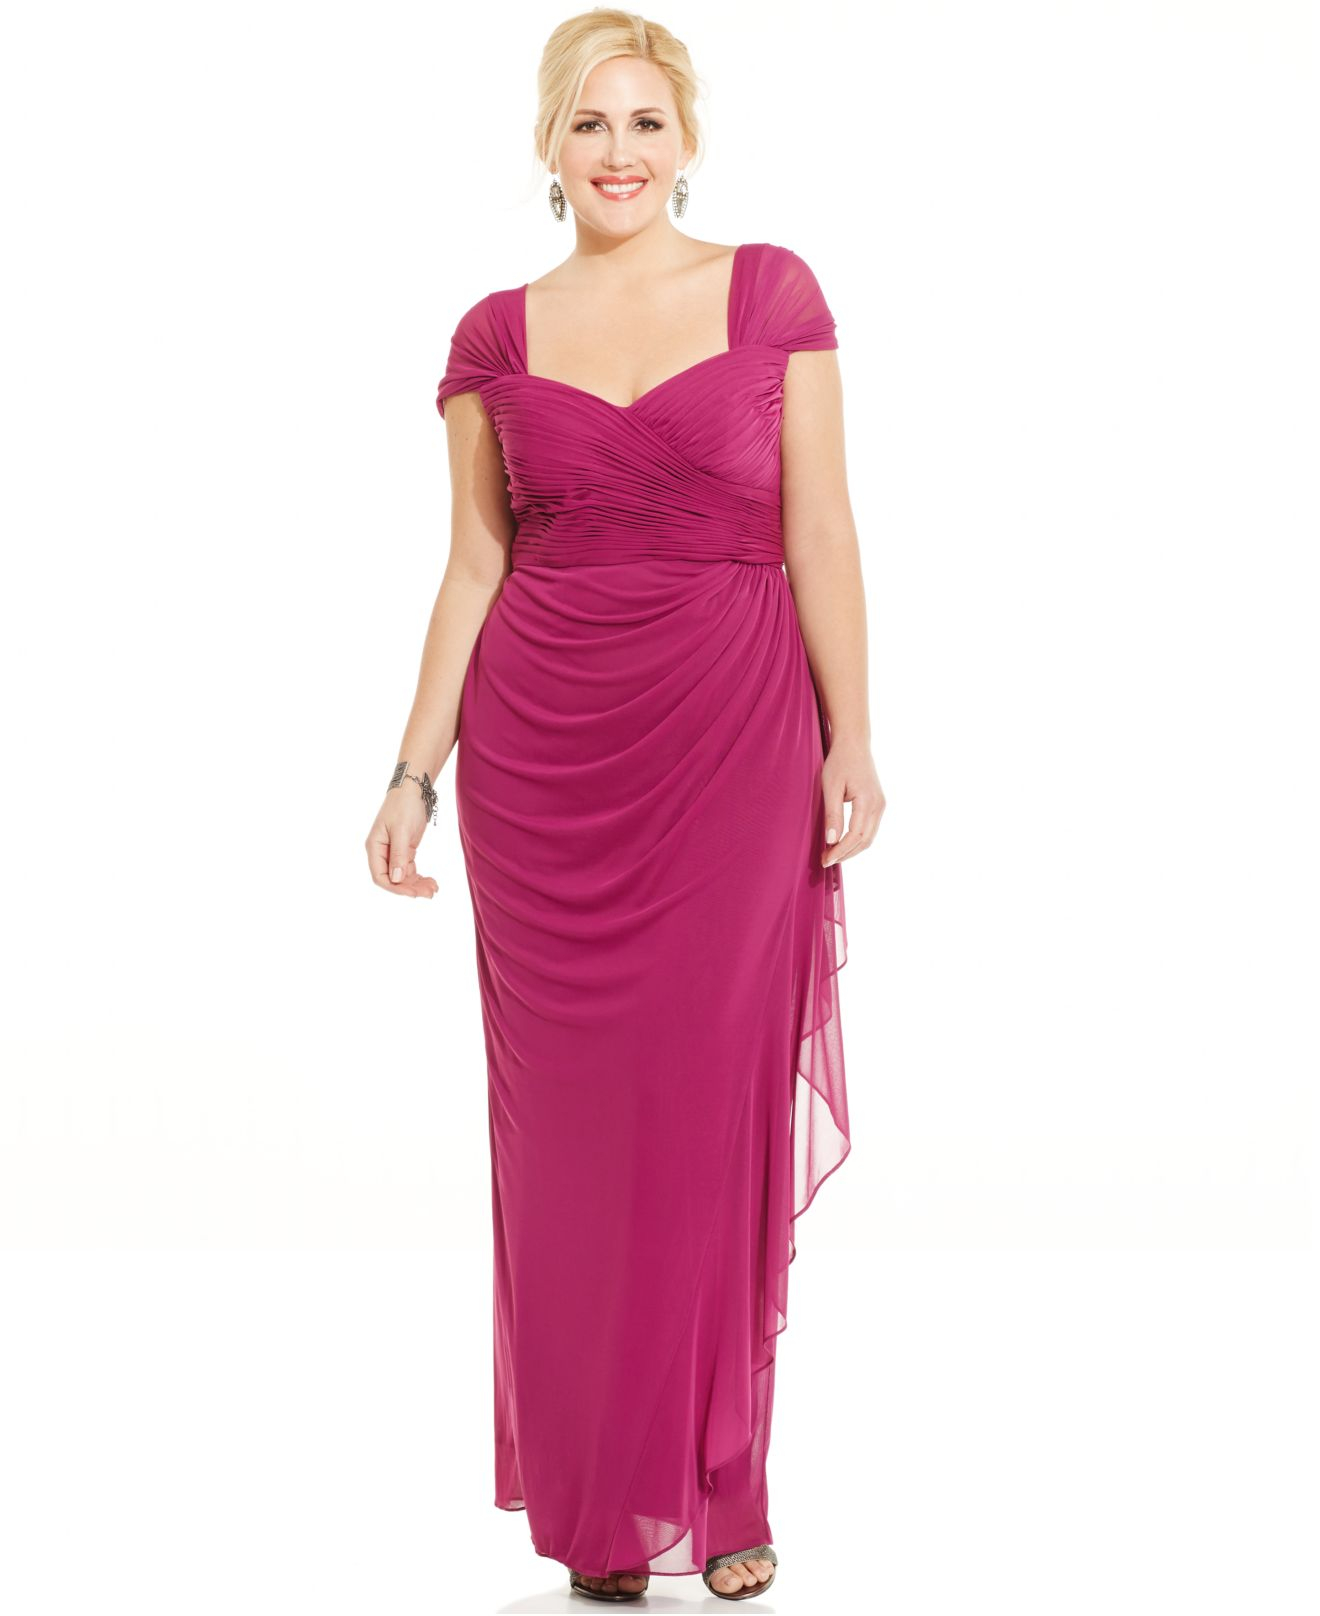 Lyst - Alex evenings Plus Size Ruched Cascade Ruffle Gown in Purple